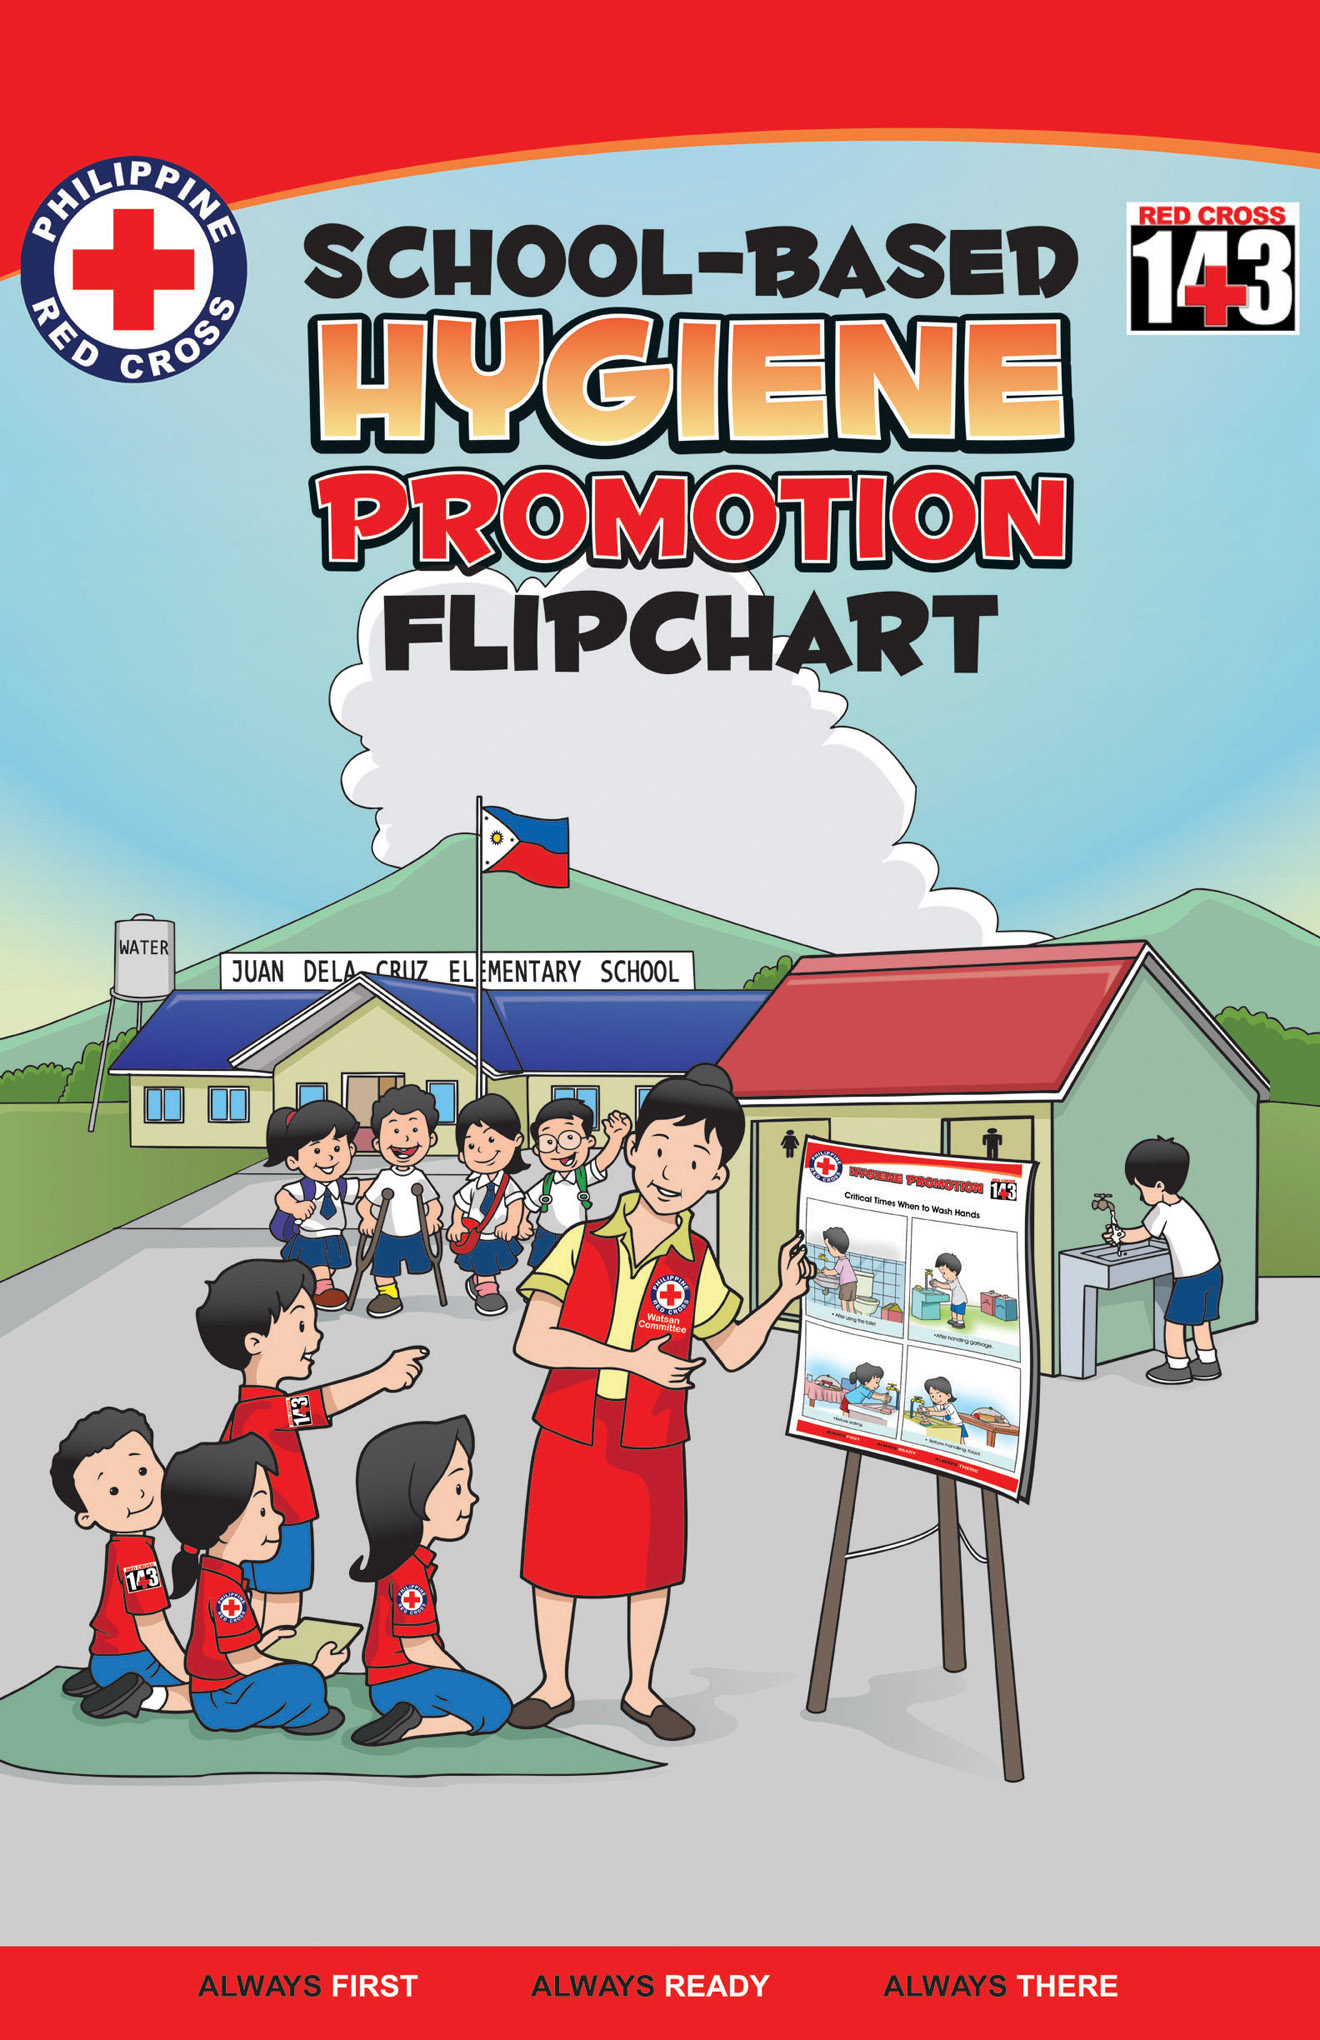 A poster showing students learning to wash their hands with soap to prevent the spread of disease in the Philippines. Poster by the Philippine Red Cross